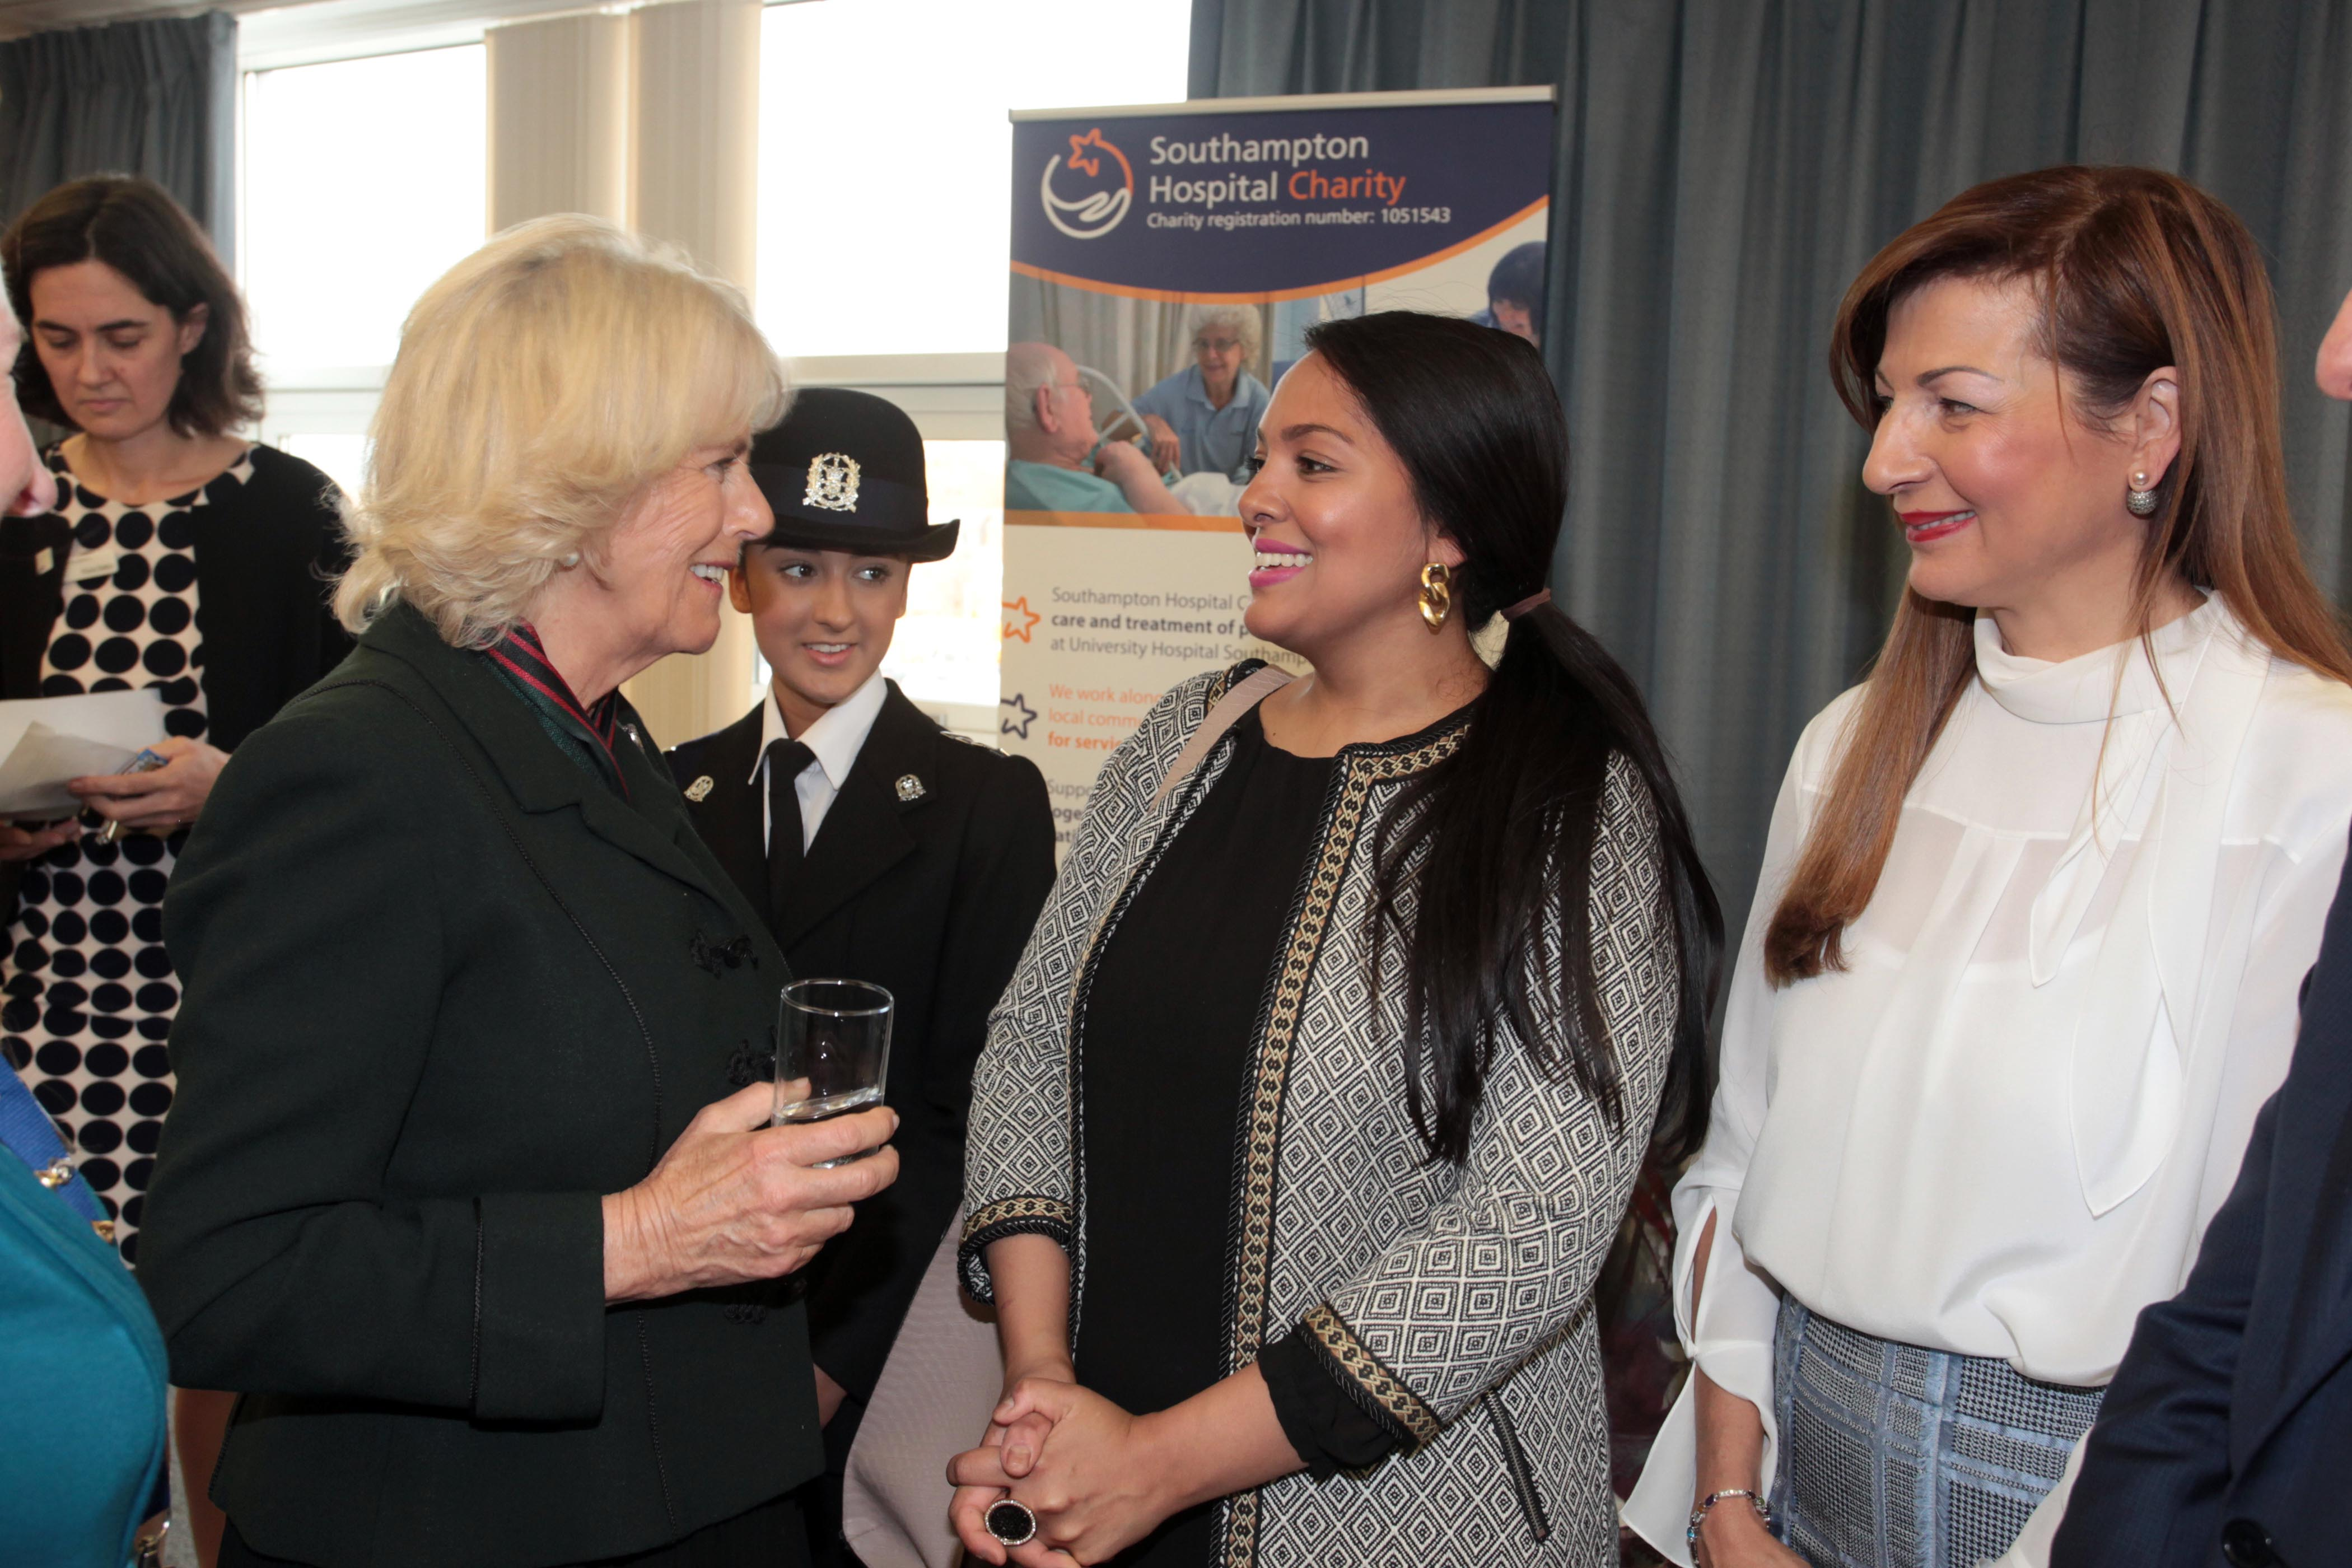 Meeting HRH Cornwall was an honour!